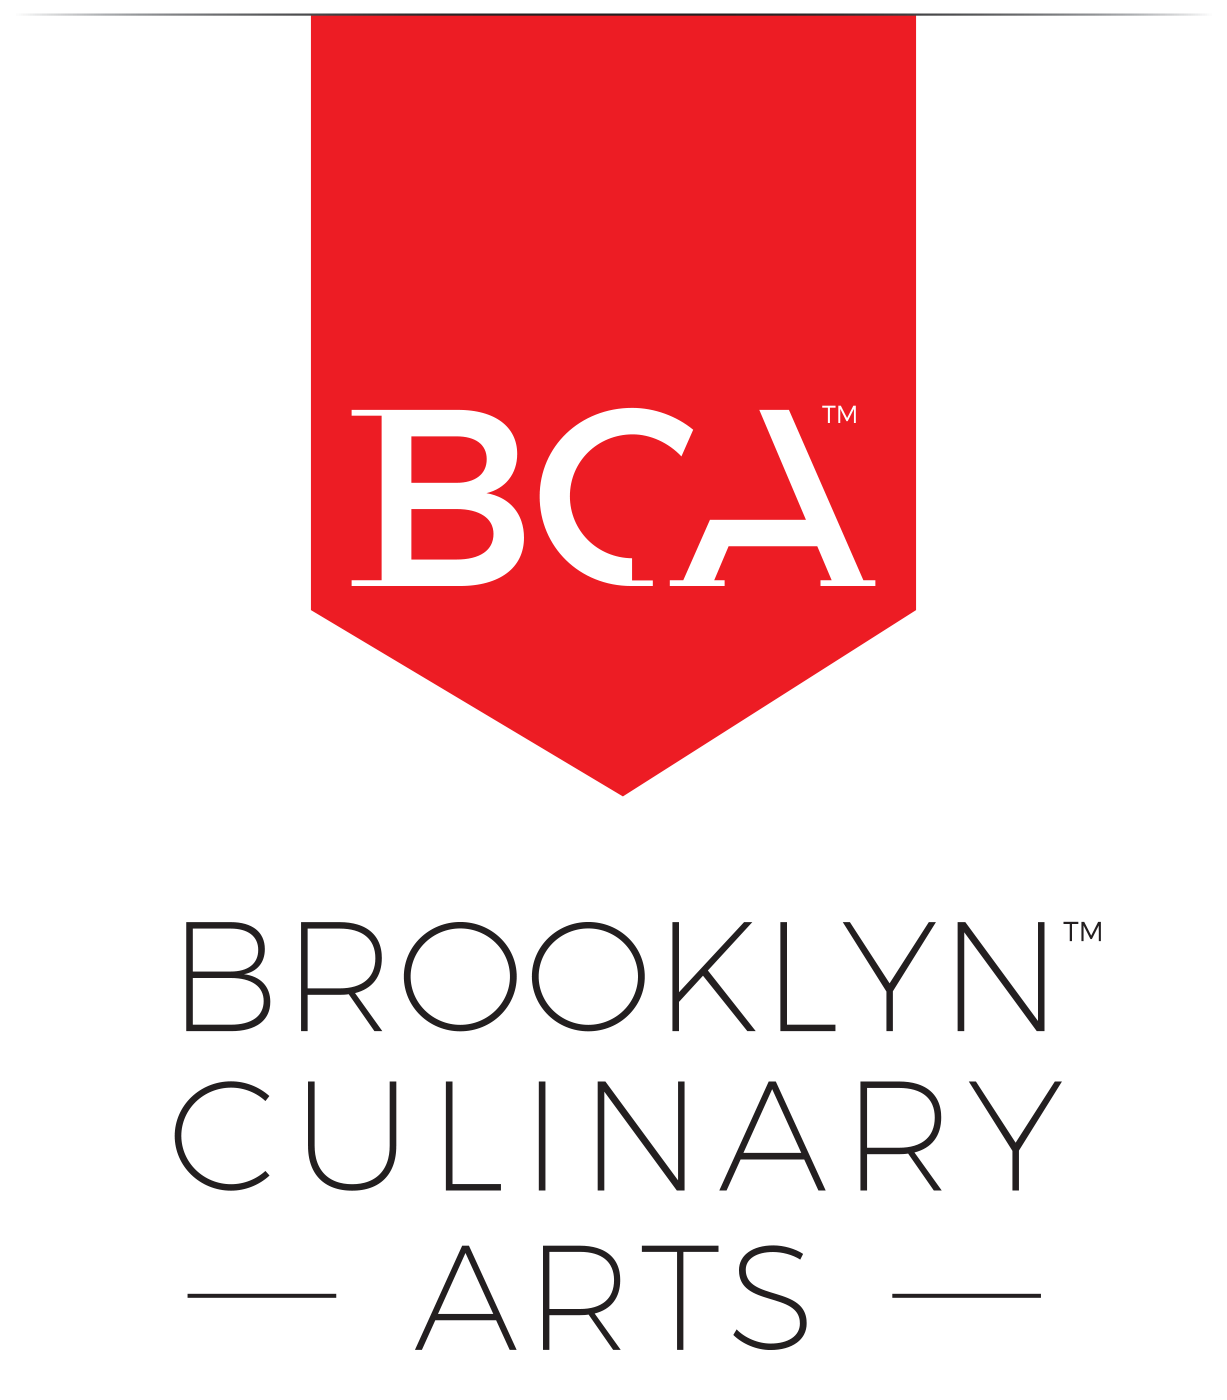 bca about brooklyn culinary arts #32656